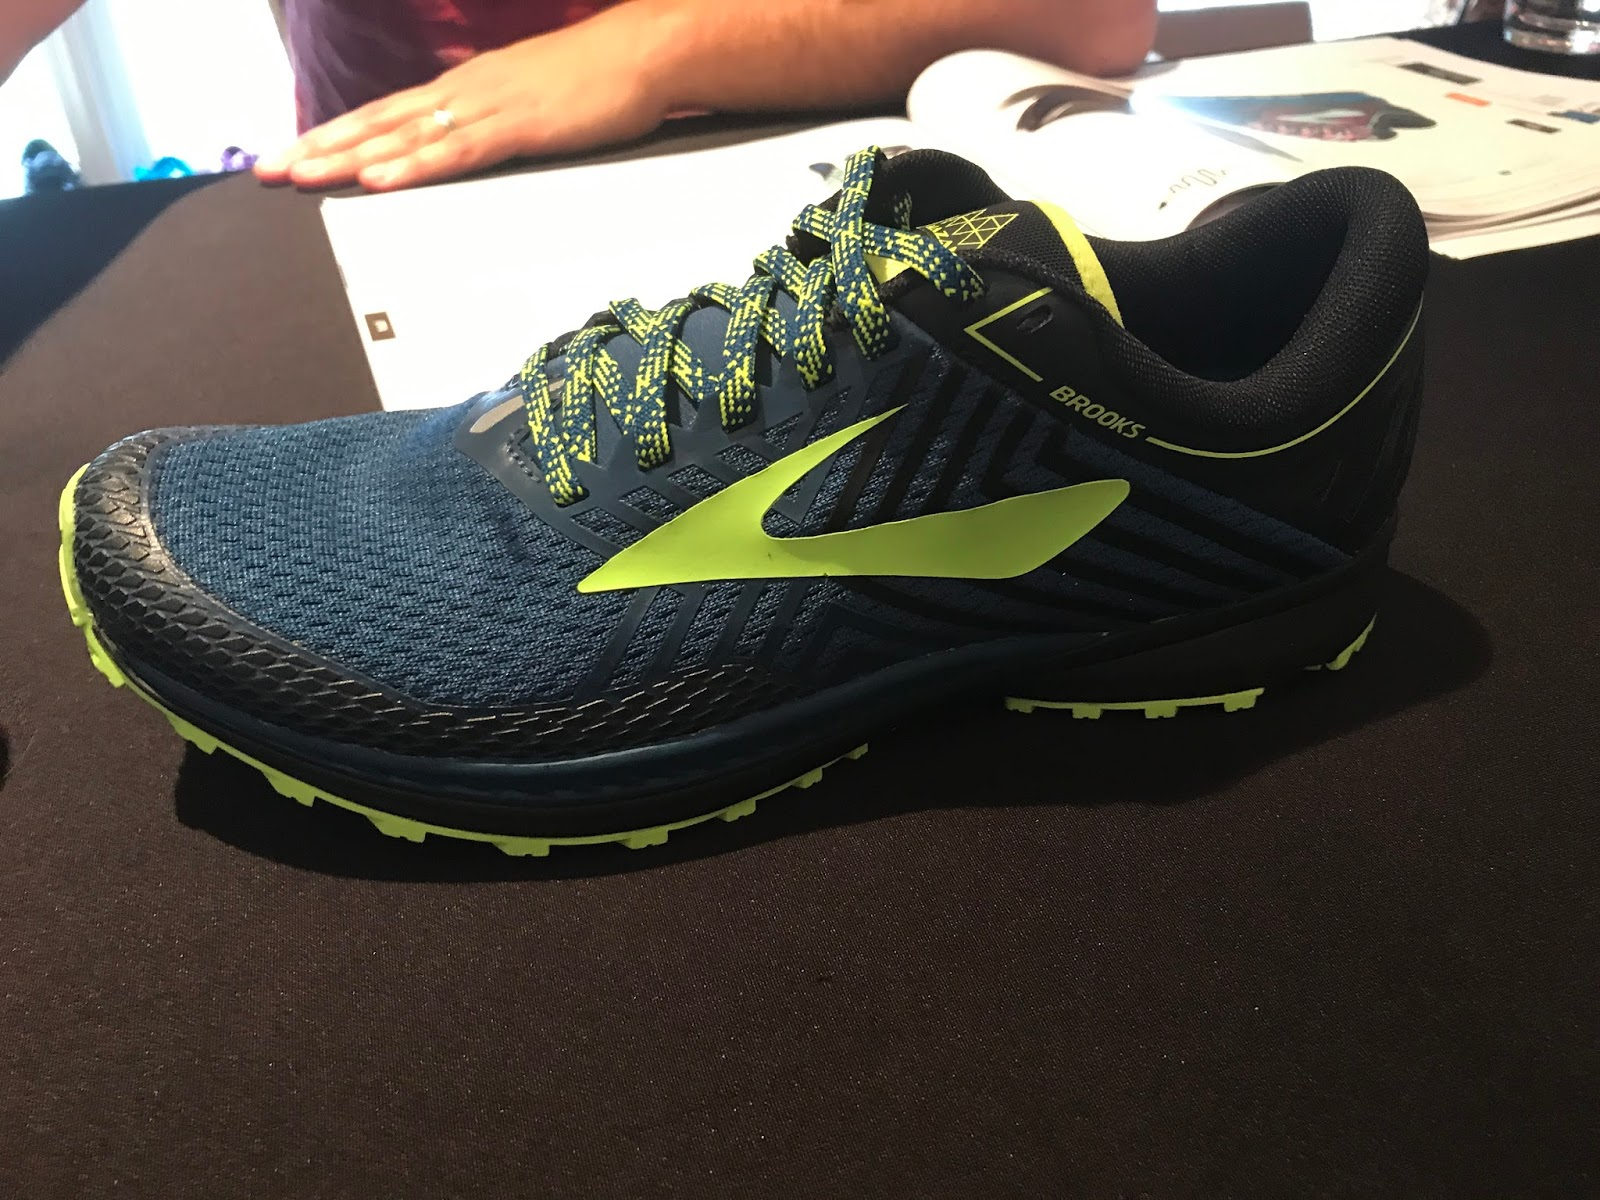 d0f5dc69012 Road Trail Run  Brooks Running Spring 2018 Previews  Transcend 5 ...